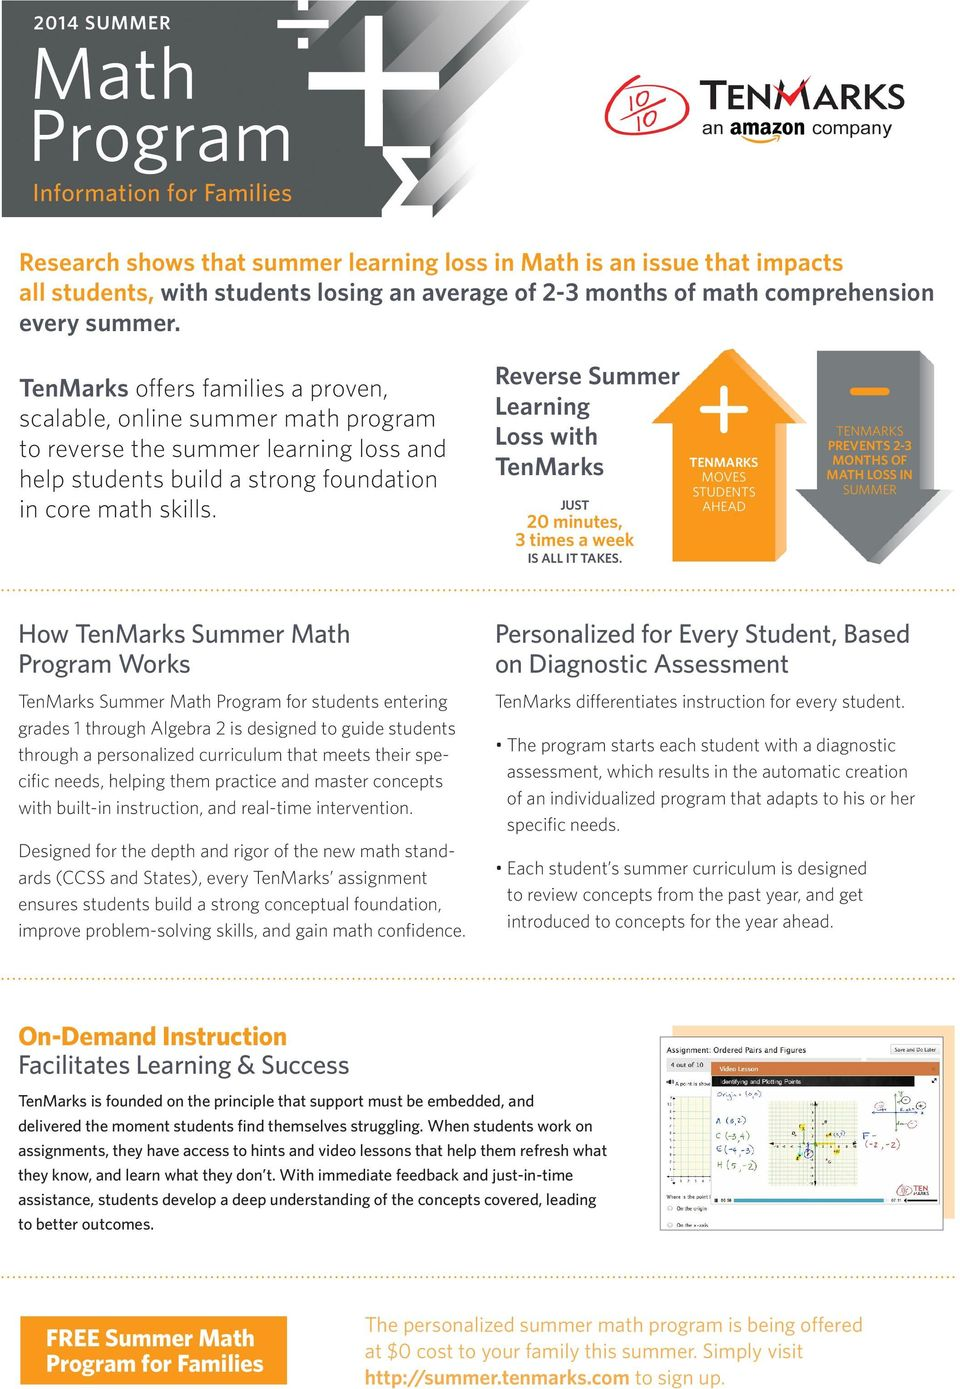 Reverse Summer Learning Loss with TenMarks JUST 20 minutes, 3 times a week IS ALL IT TAKES.